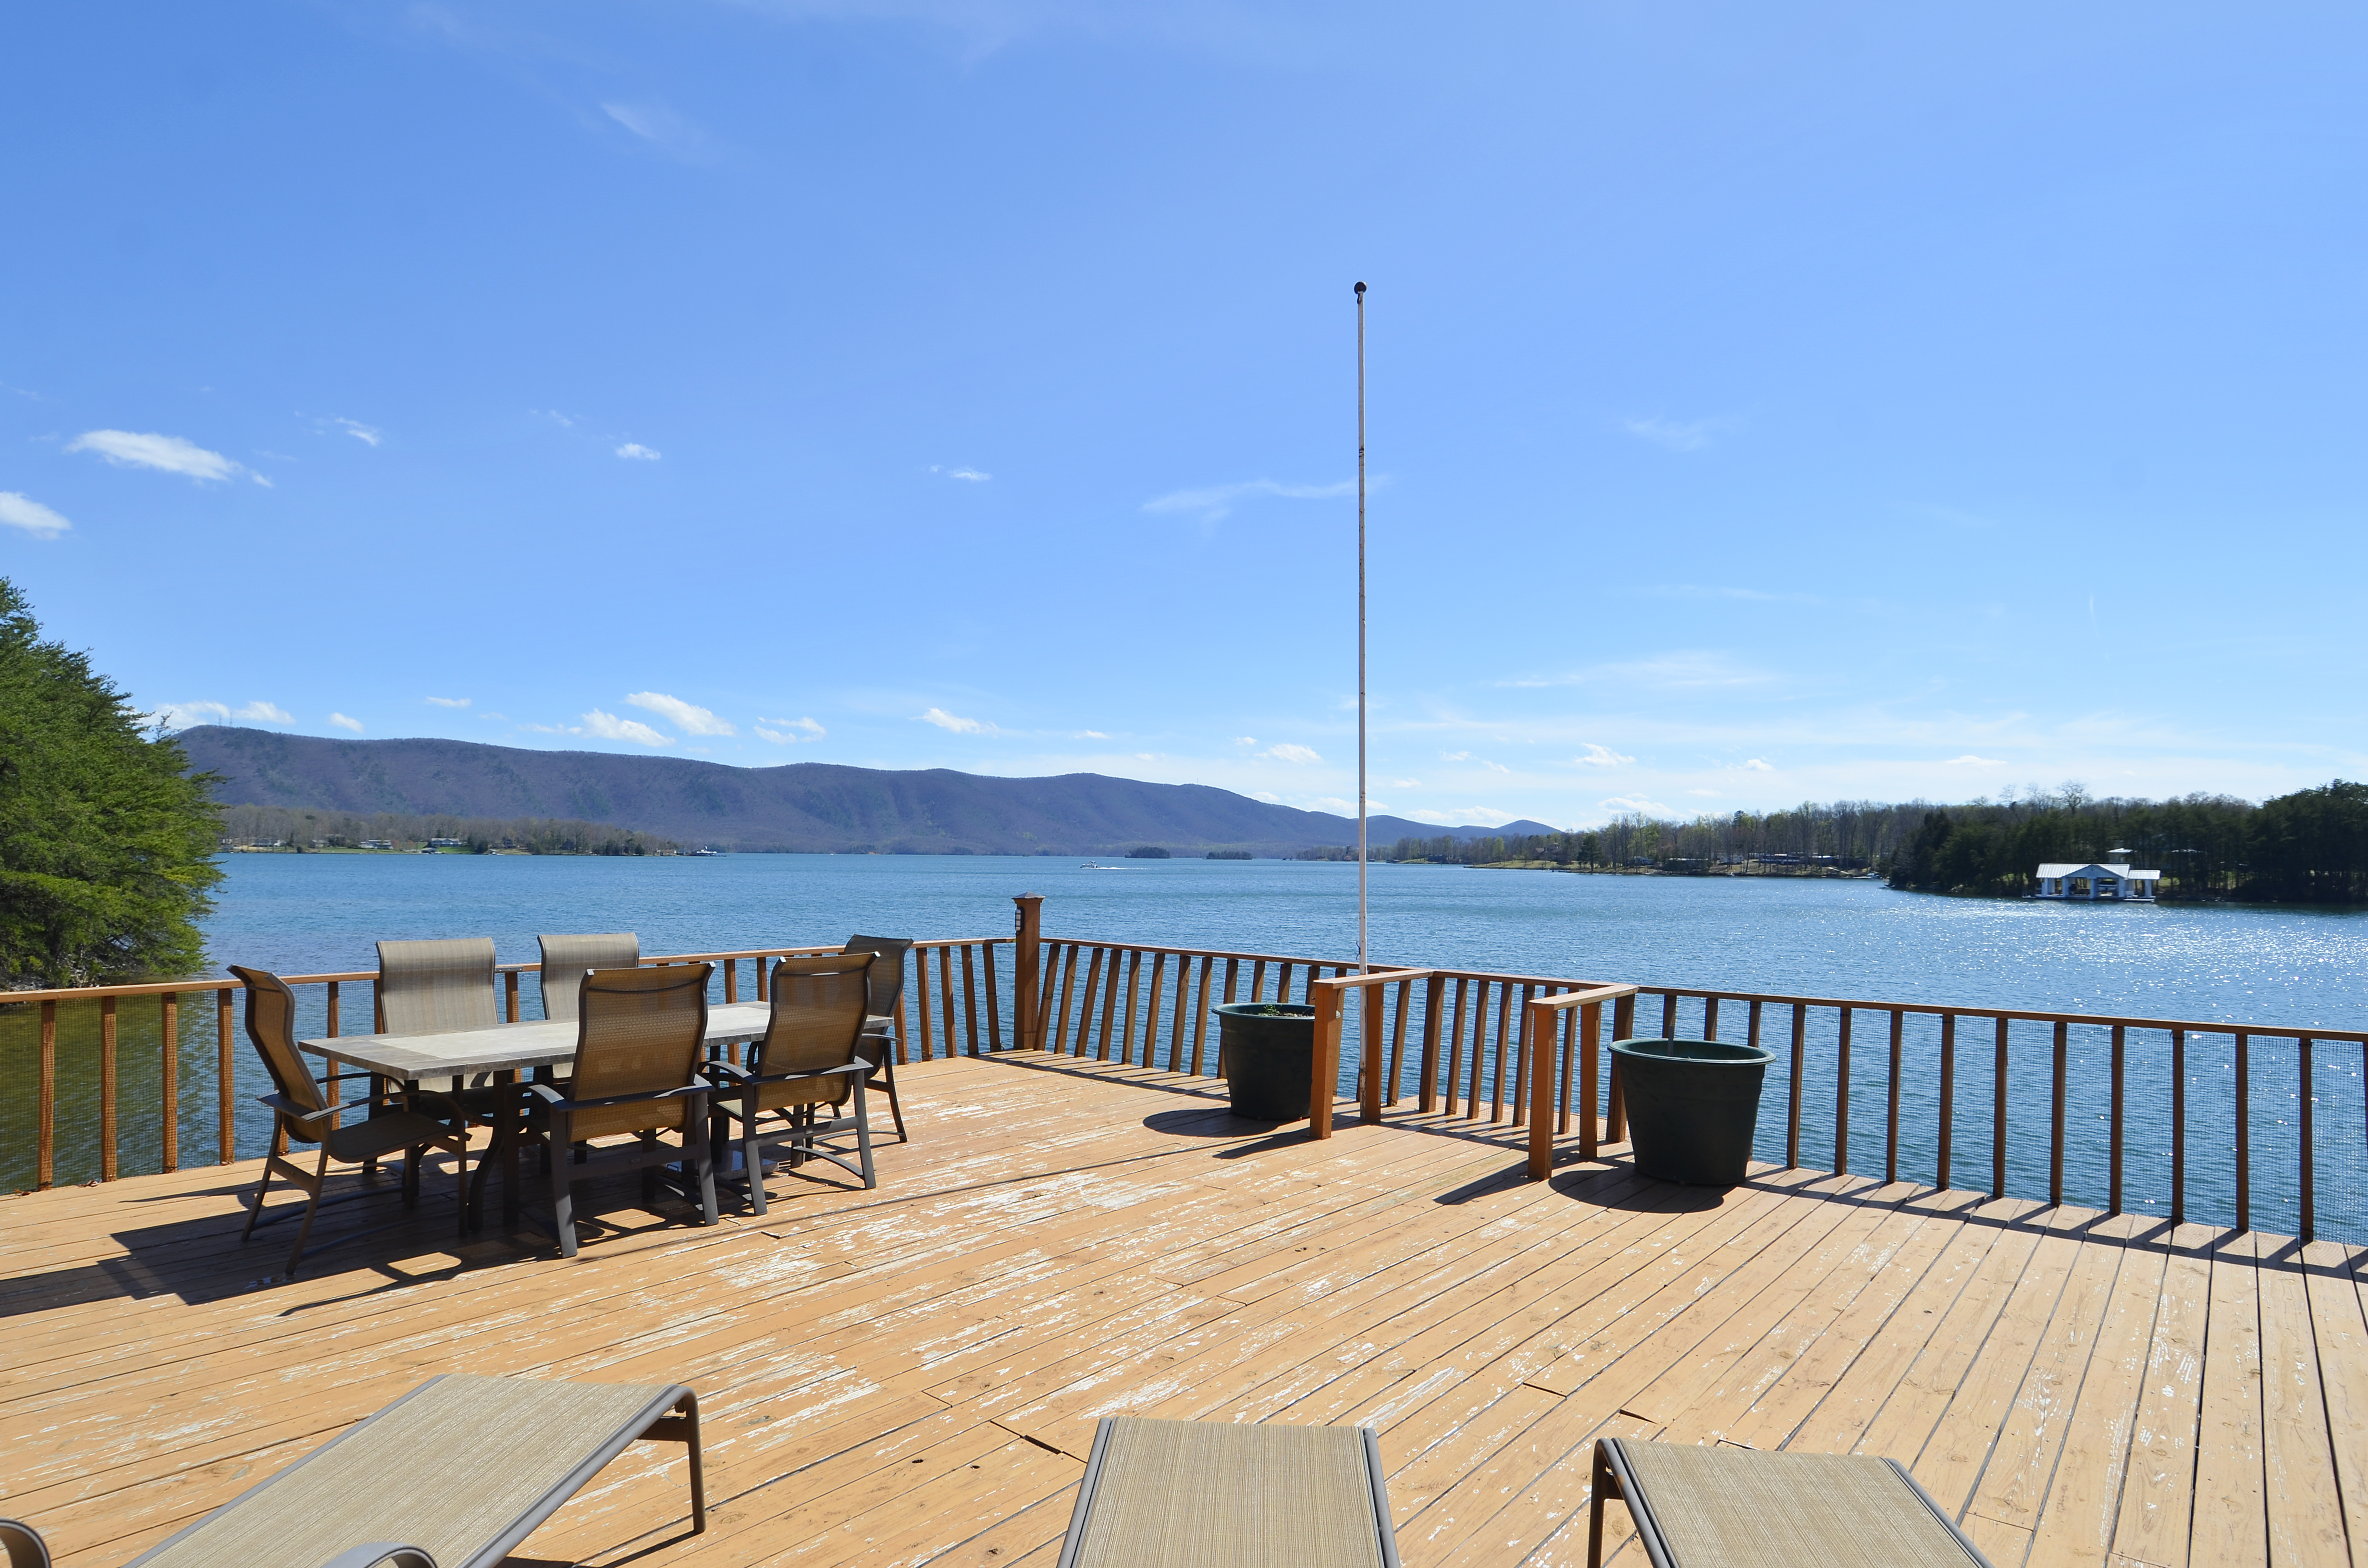 Hot-Tub, Gas fire, Ping-Pong, Pool Table, Dog Friendly, Guest Cabin, Sandy Beach